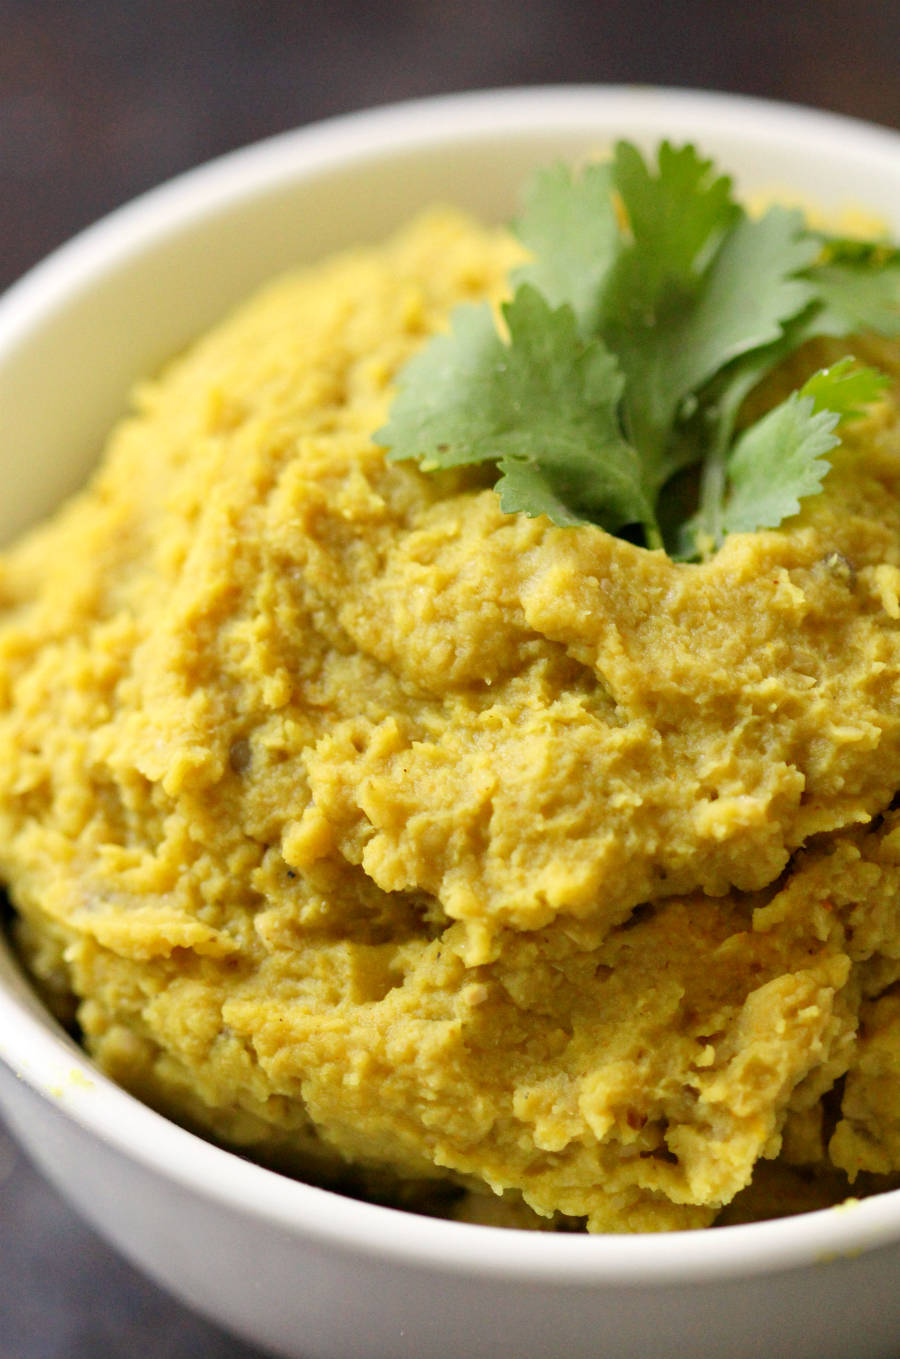 Healing Indian Eggplant Hummus | Strength and Sunshine @RebeccaGF666 A hummus that heals! This Healing Indian Eggplant Hummus is a perfect blend of roasted eggplant, chickpeas, and Indian spices like turmeric. It's gluten-free, vegan, and fat-free, making it a delicious snack recipe for dipping or spreading!